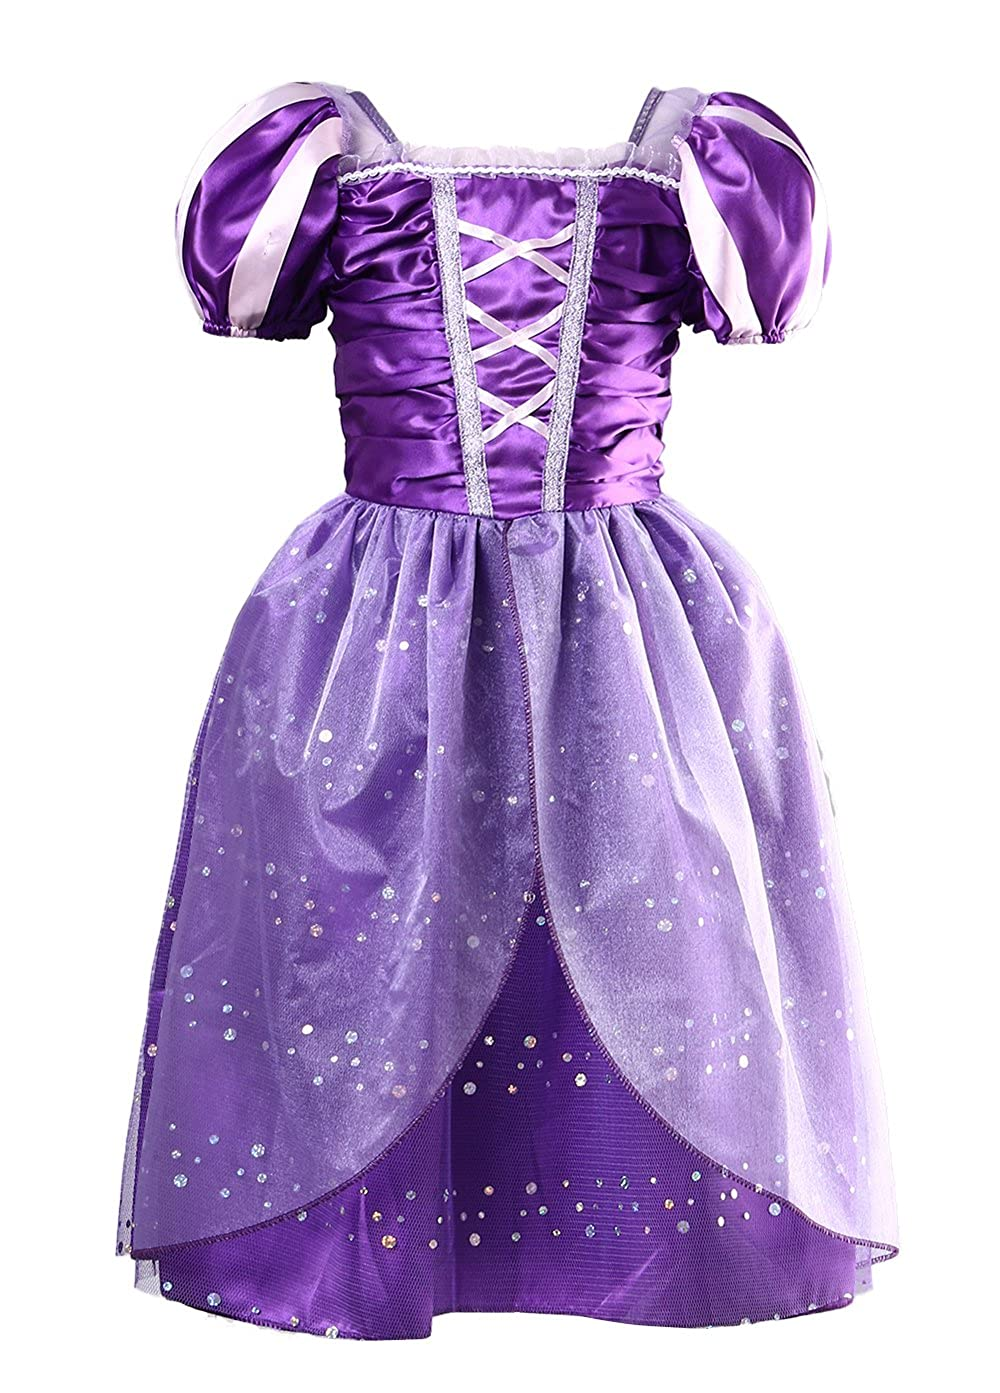 Costumes   Accessories   Online Shopping for Clothing 426e2088df6e